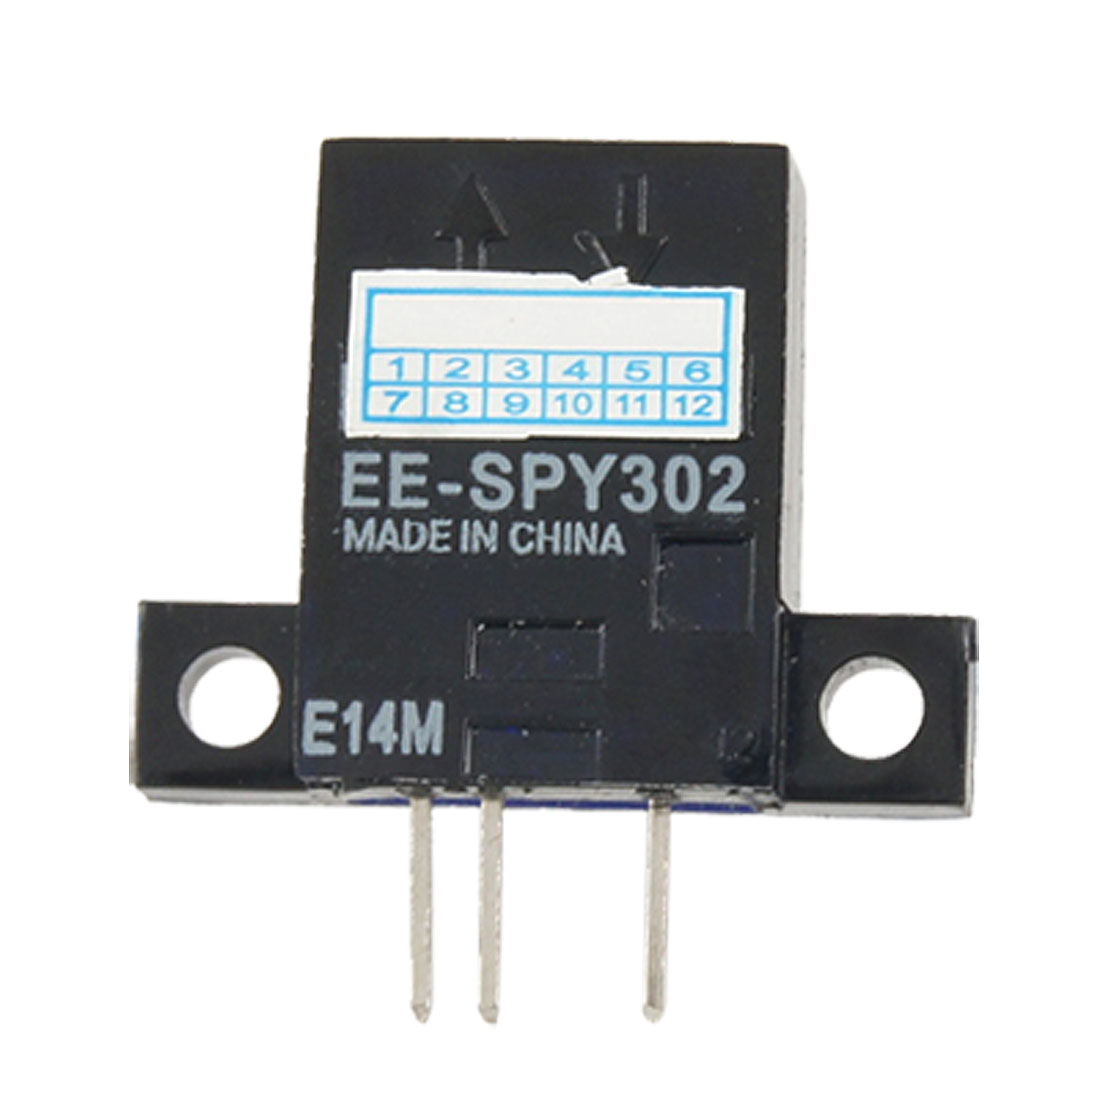 EE-SPY302 Feedback Reflection NPN Photo Micro Switch